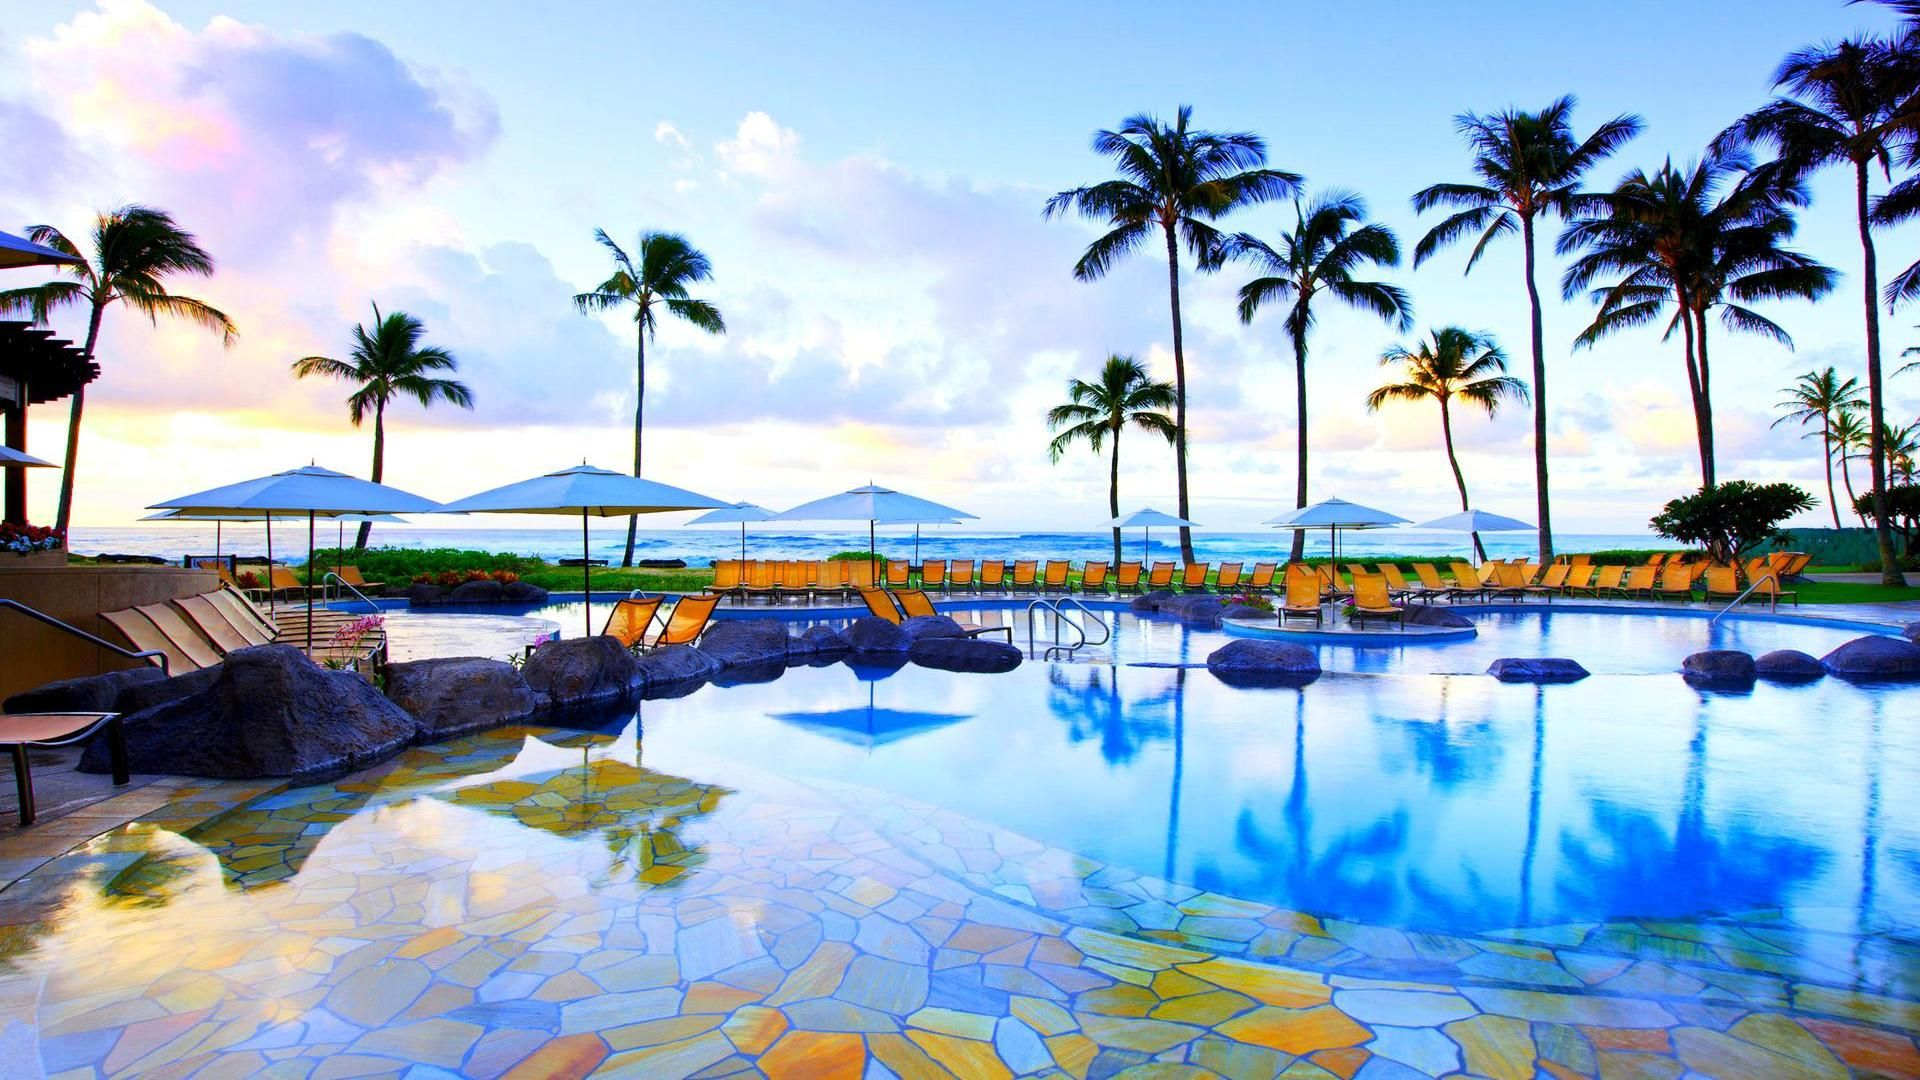 Beautiful Resort Pool In Kauai Hawaii HD Desktop